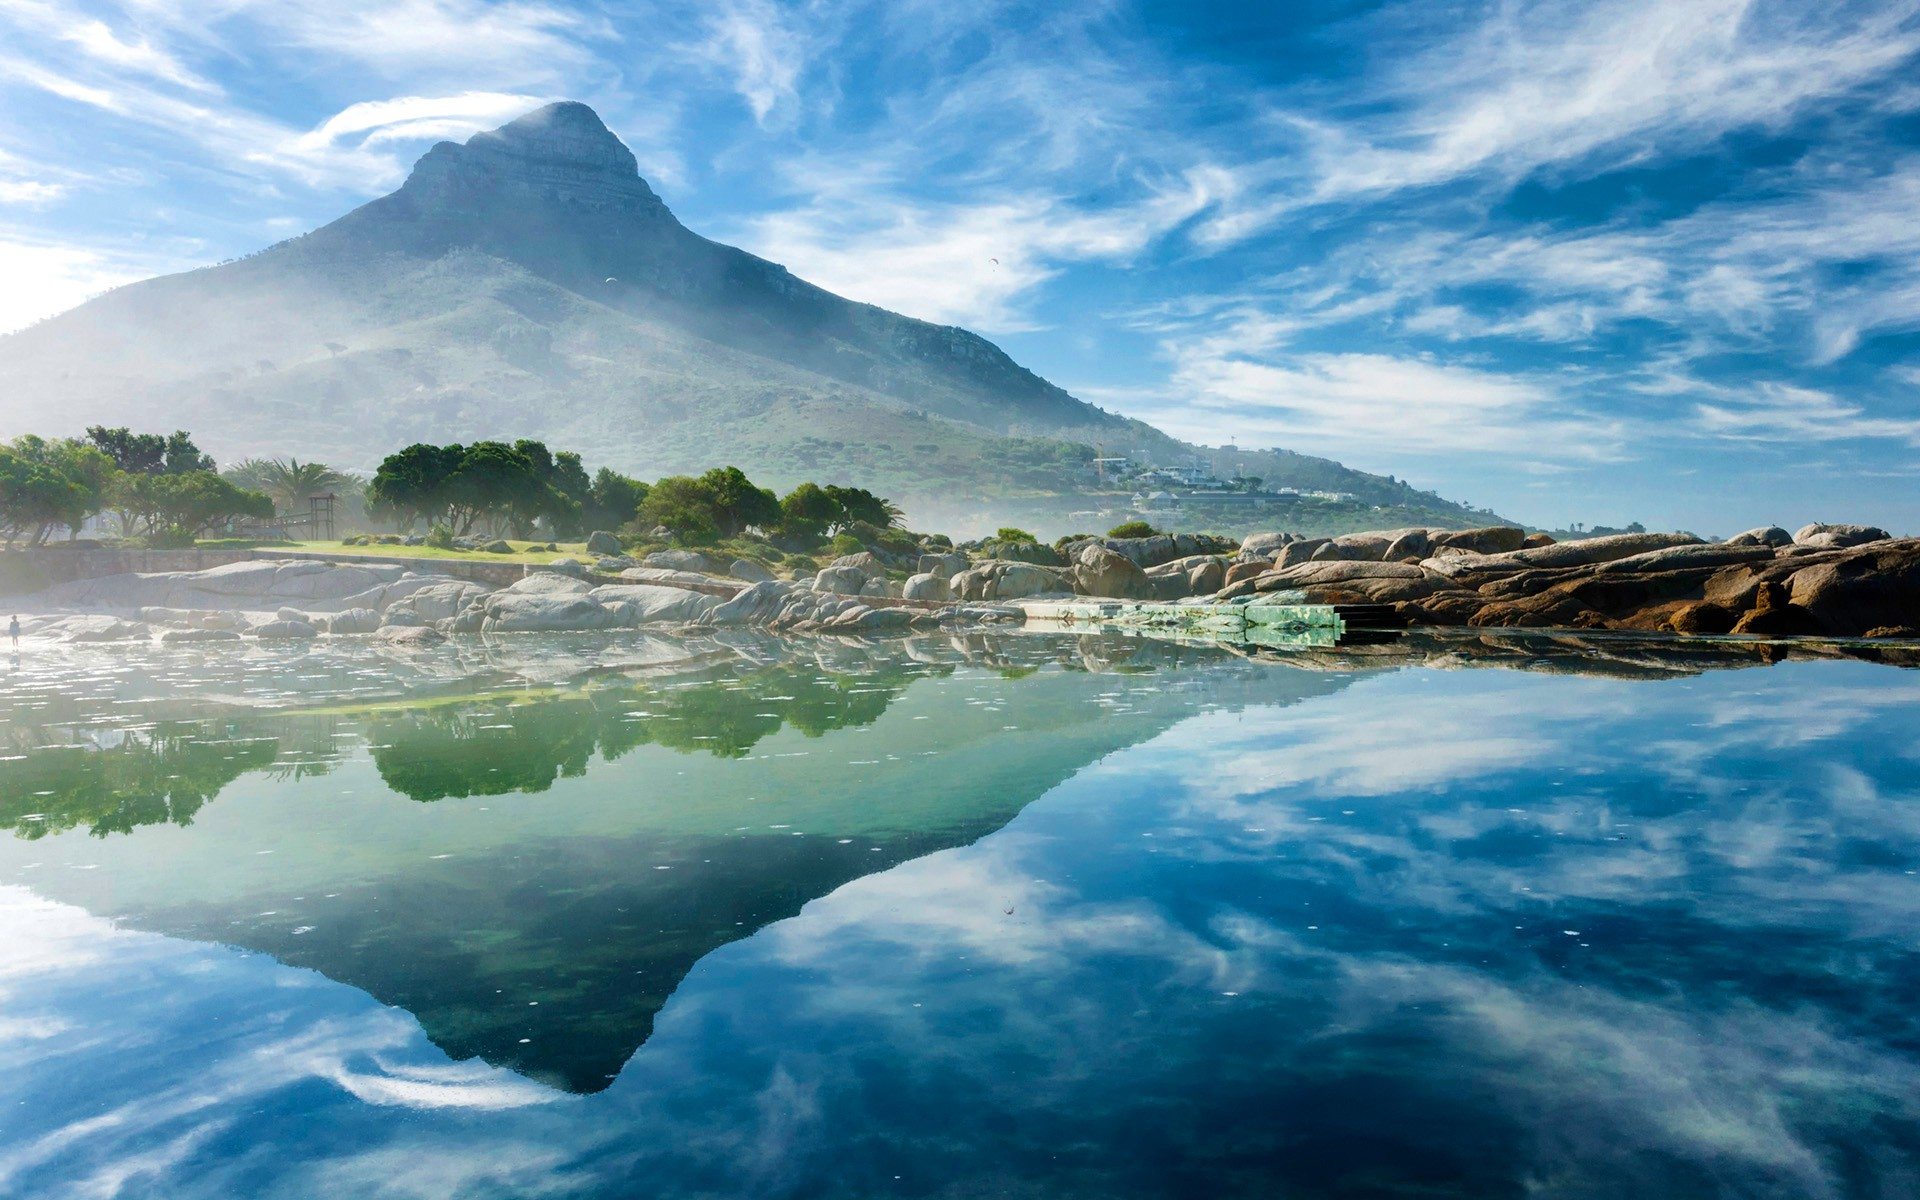 Ocean Reflection Hd Nature 4k Wallpapers Images